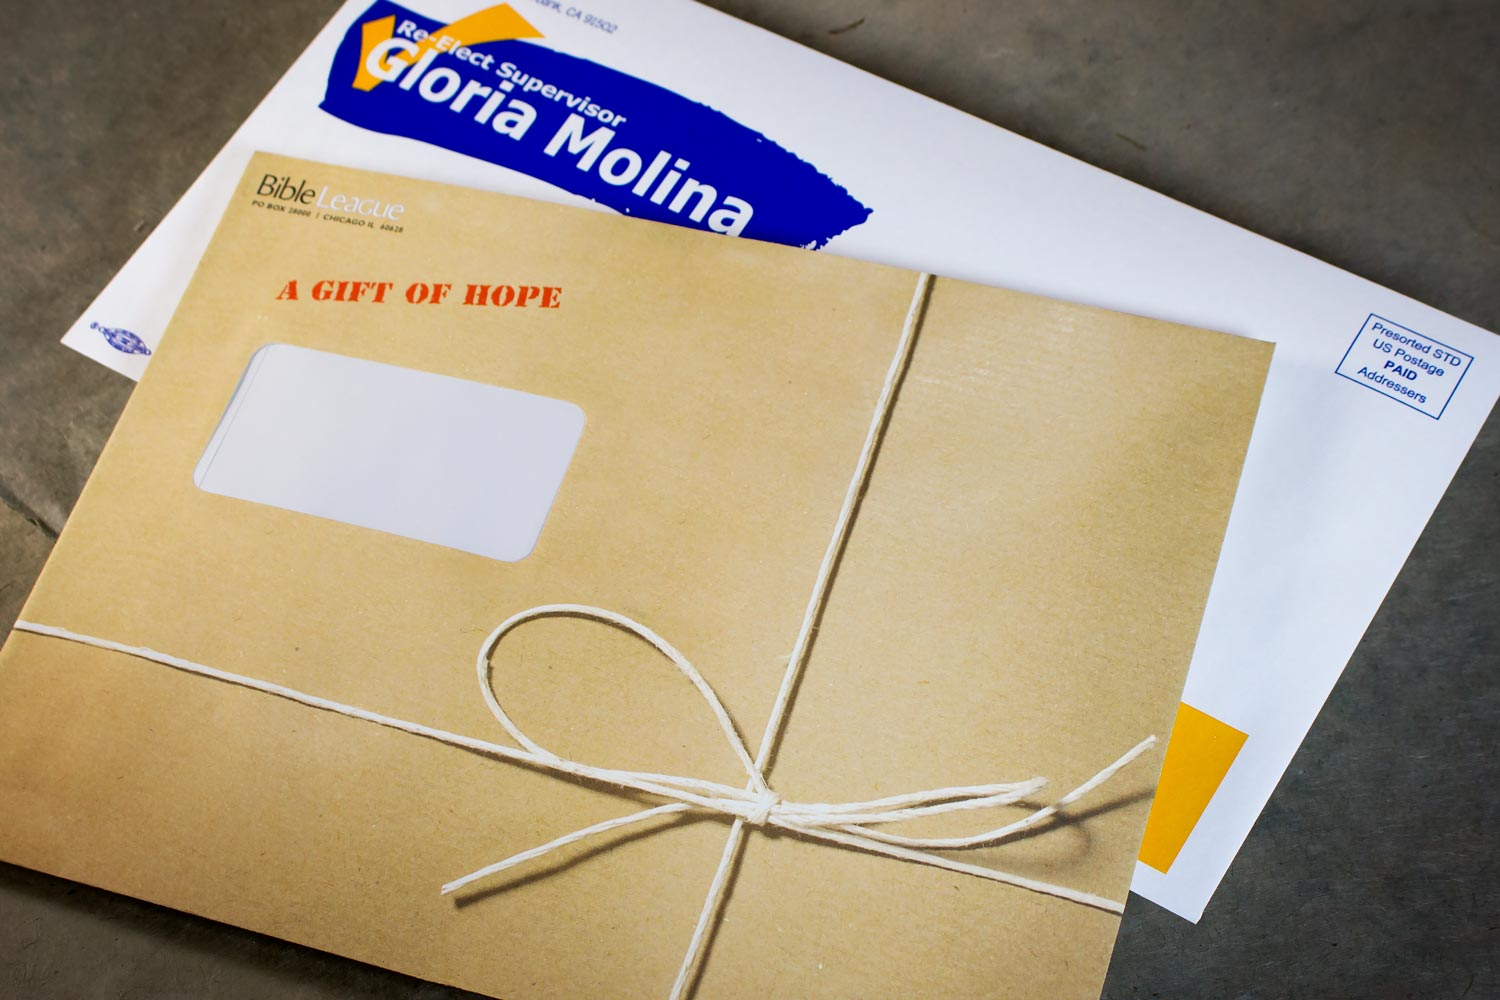 Larger envelopes convey an air of importance and stand out in a mailbox or on a desk